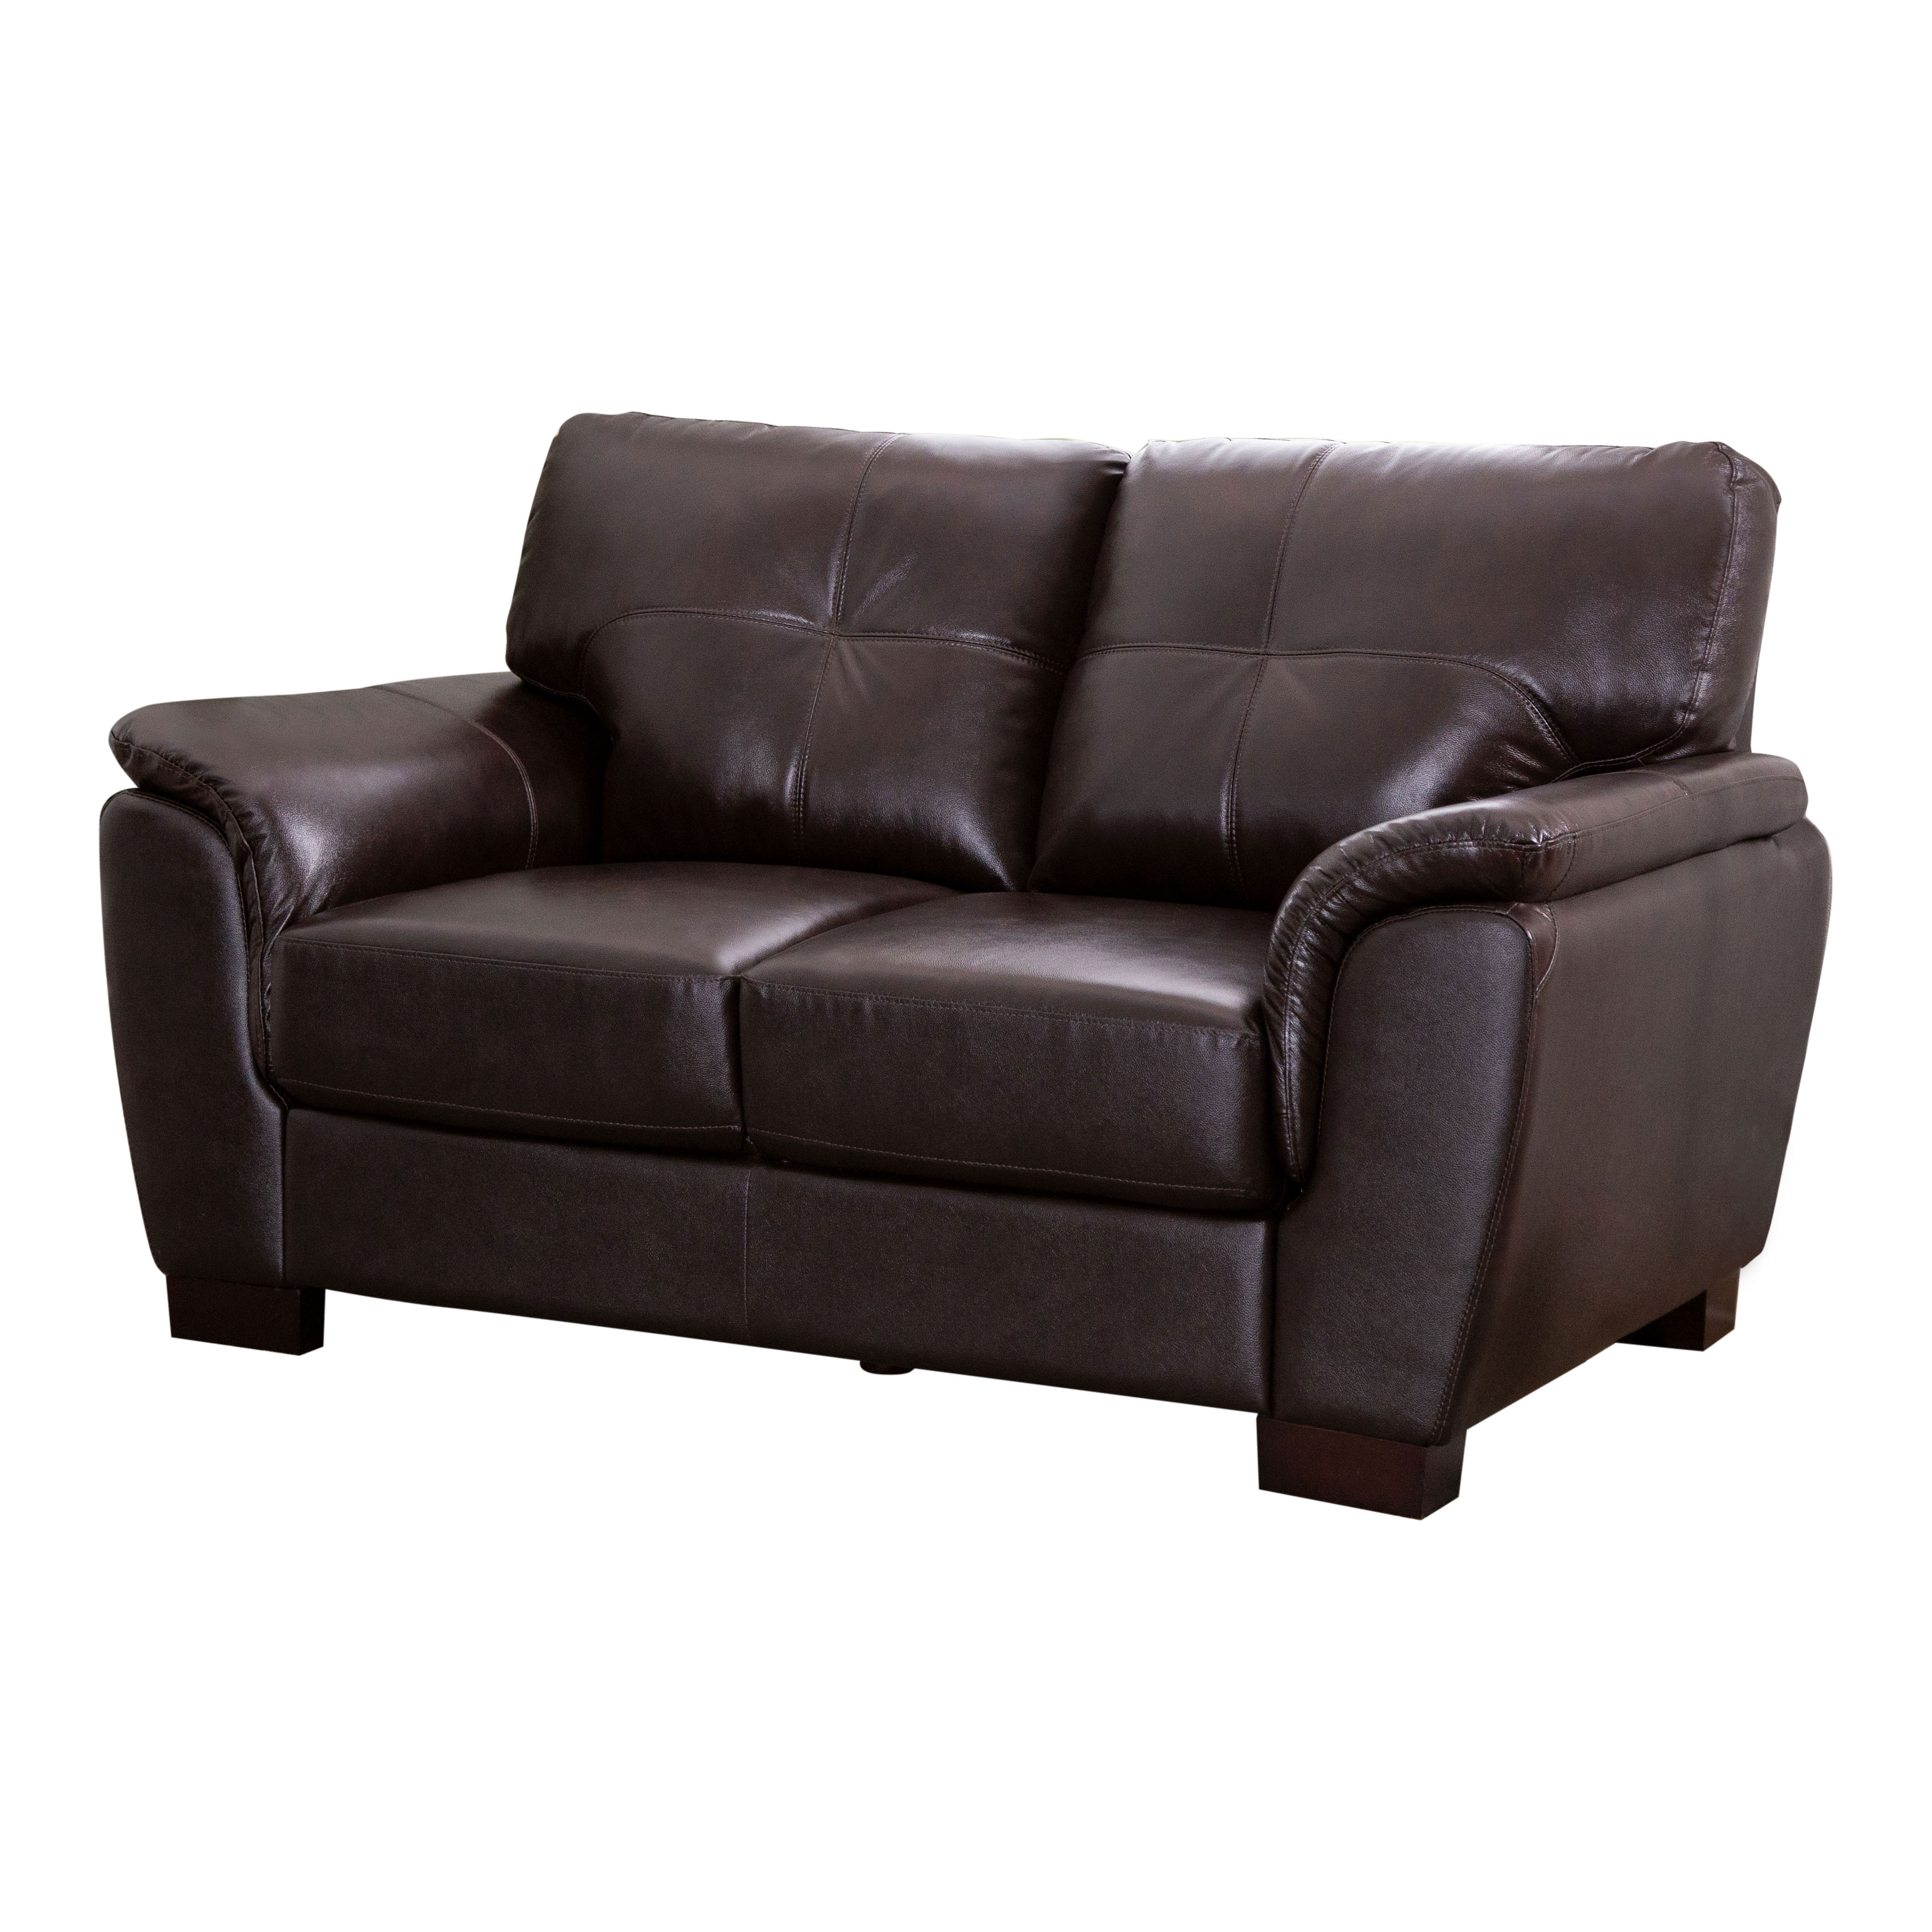 Nia Leather Loveseat, Brown